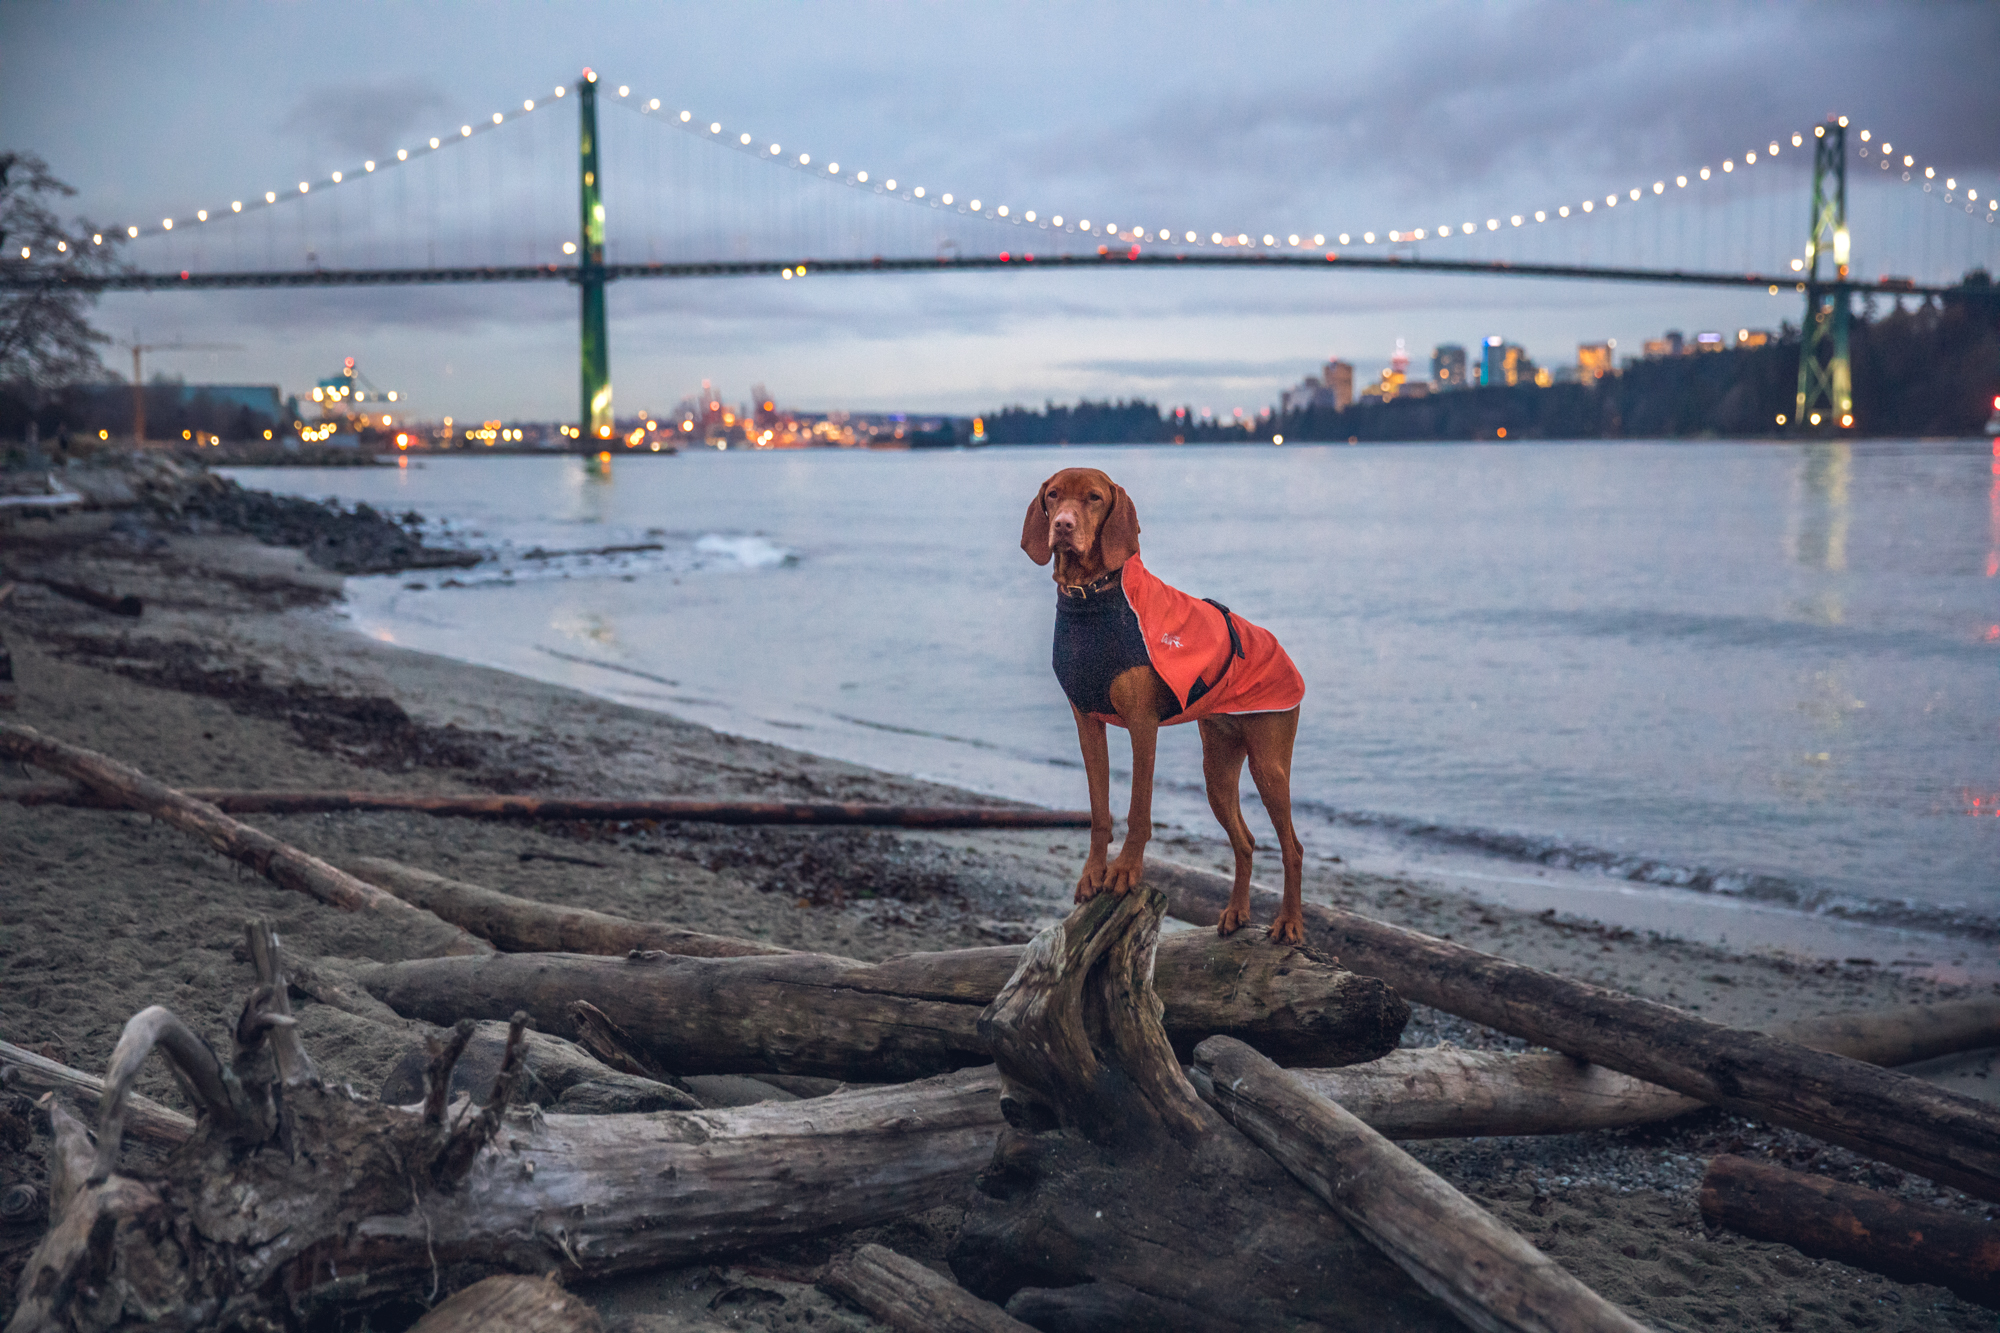 Dog on beach with lionsgate bridge